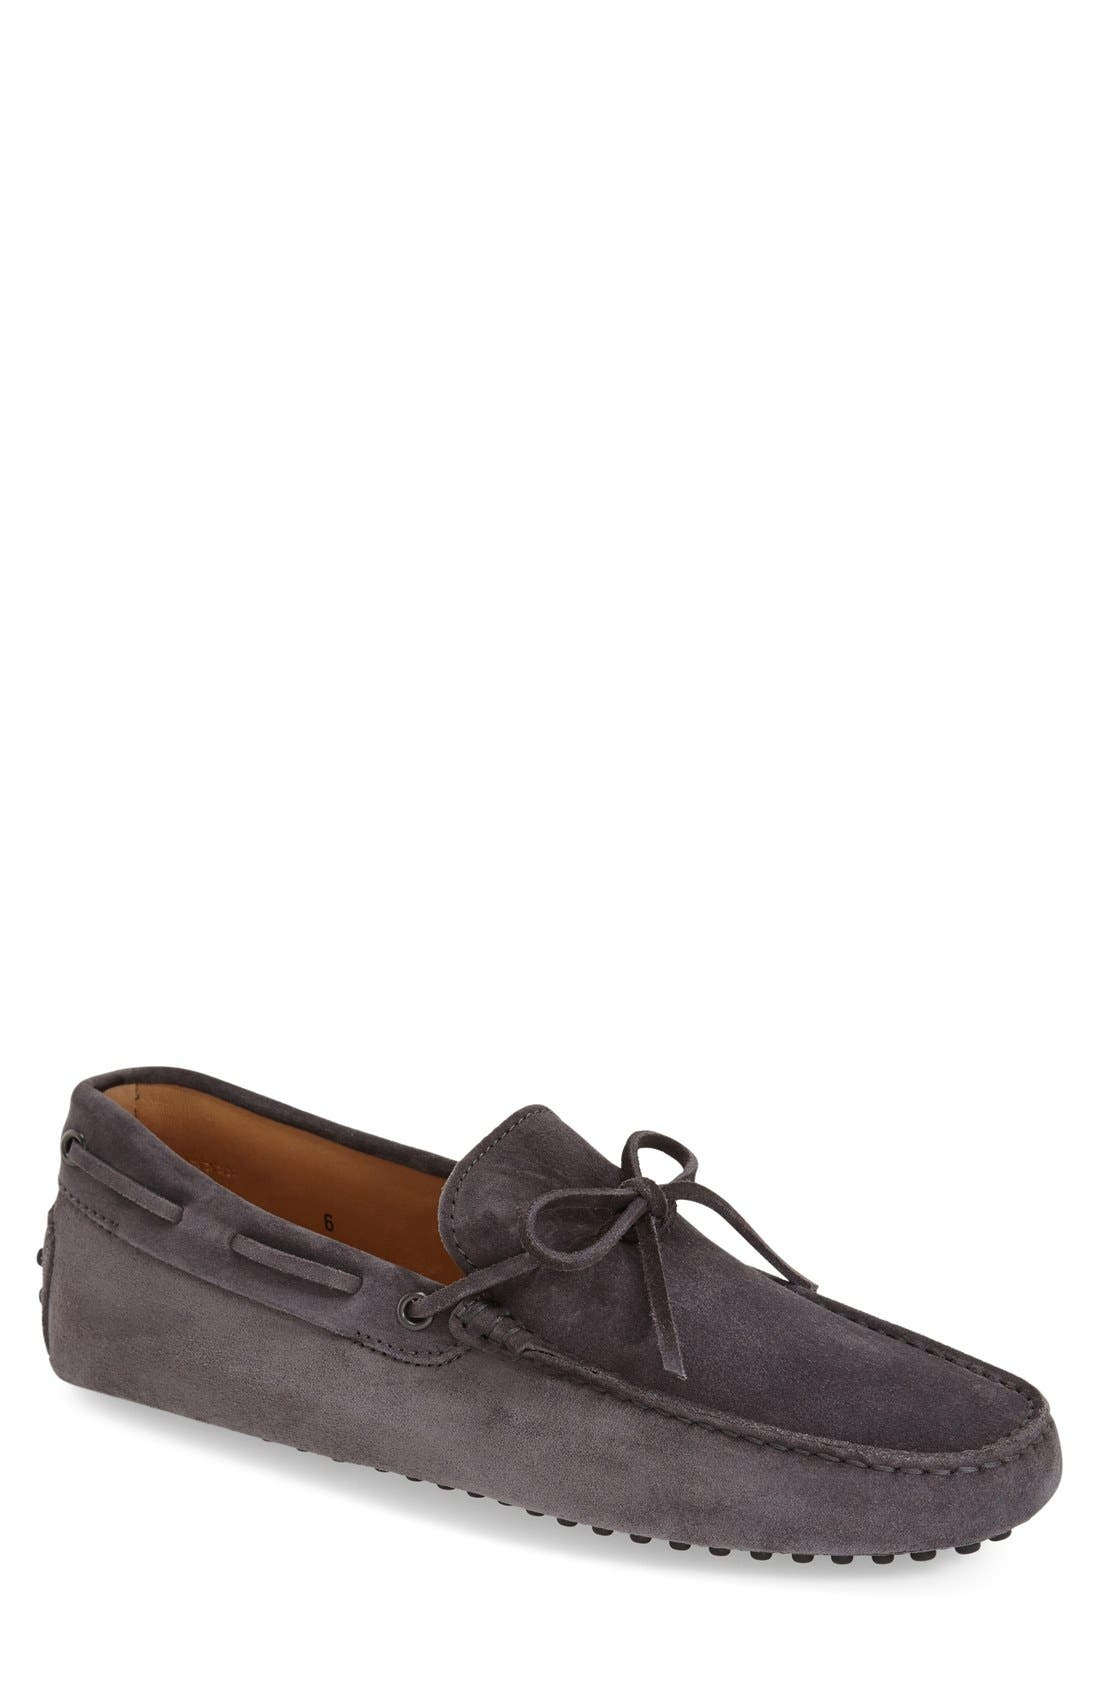 Gommini Tie Front Driving Moccasin,                             Main thumbnail 3, color,